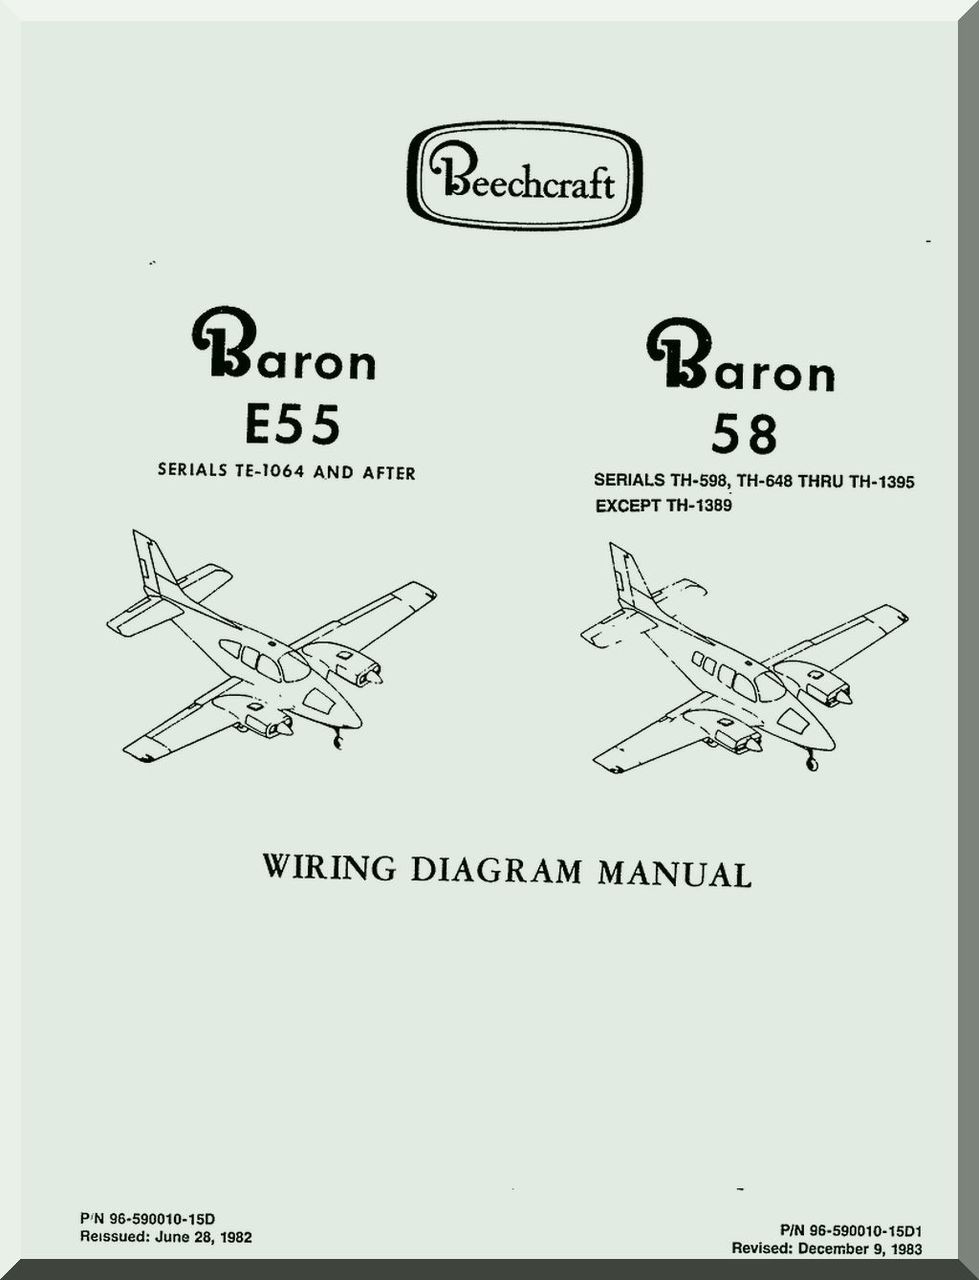 small resolution of wiring diagram manual aircraft beechcraft baron e 55 58 aircraft wiring diagram manual